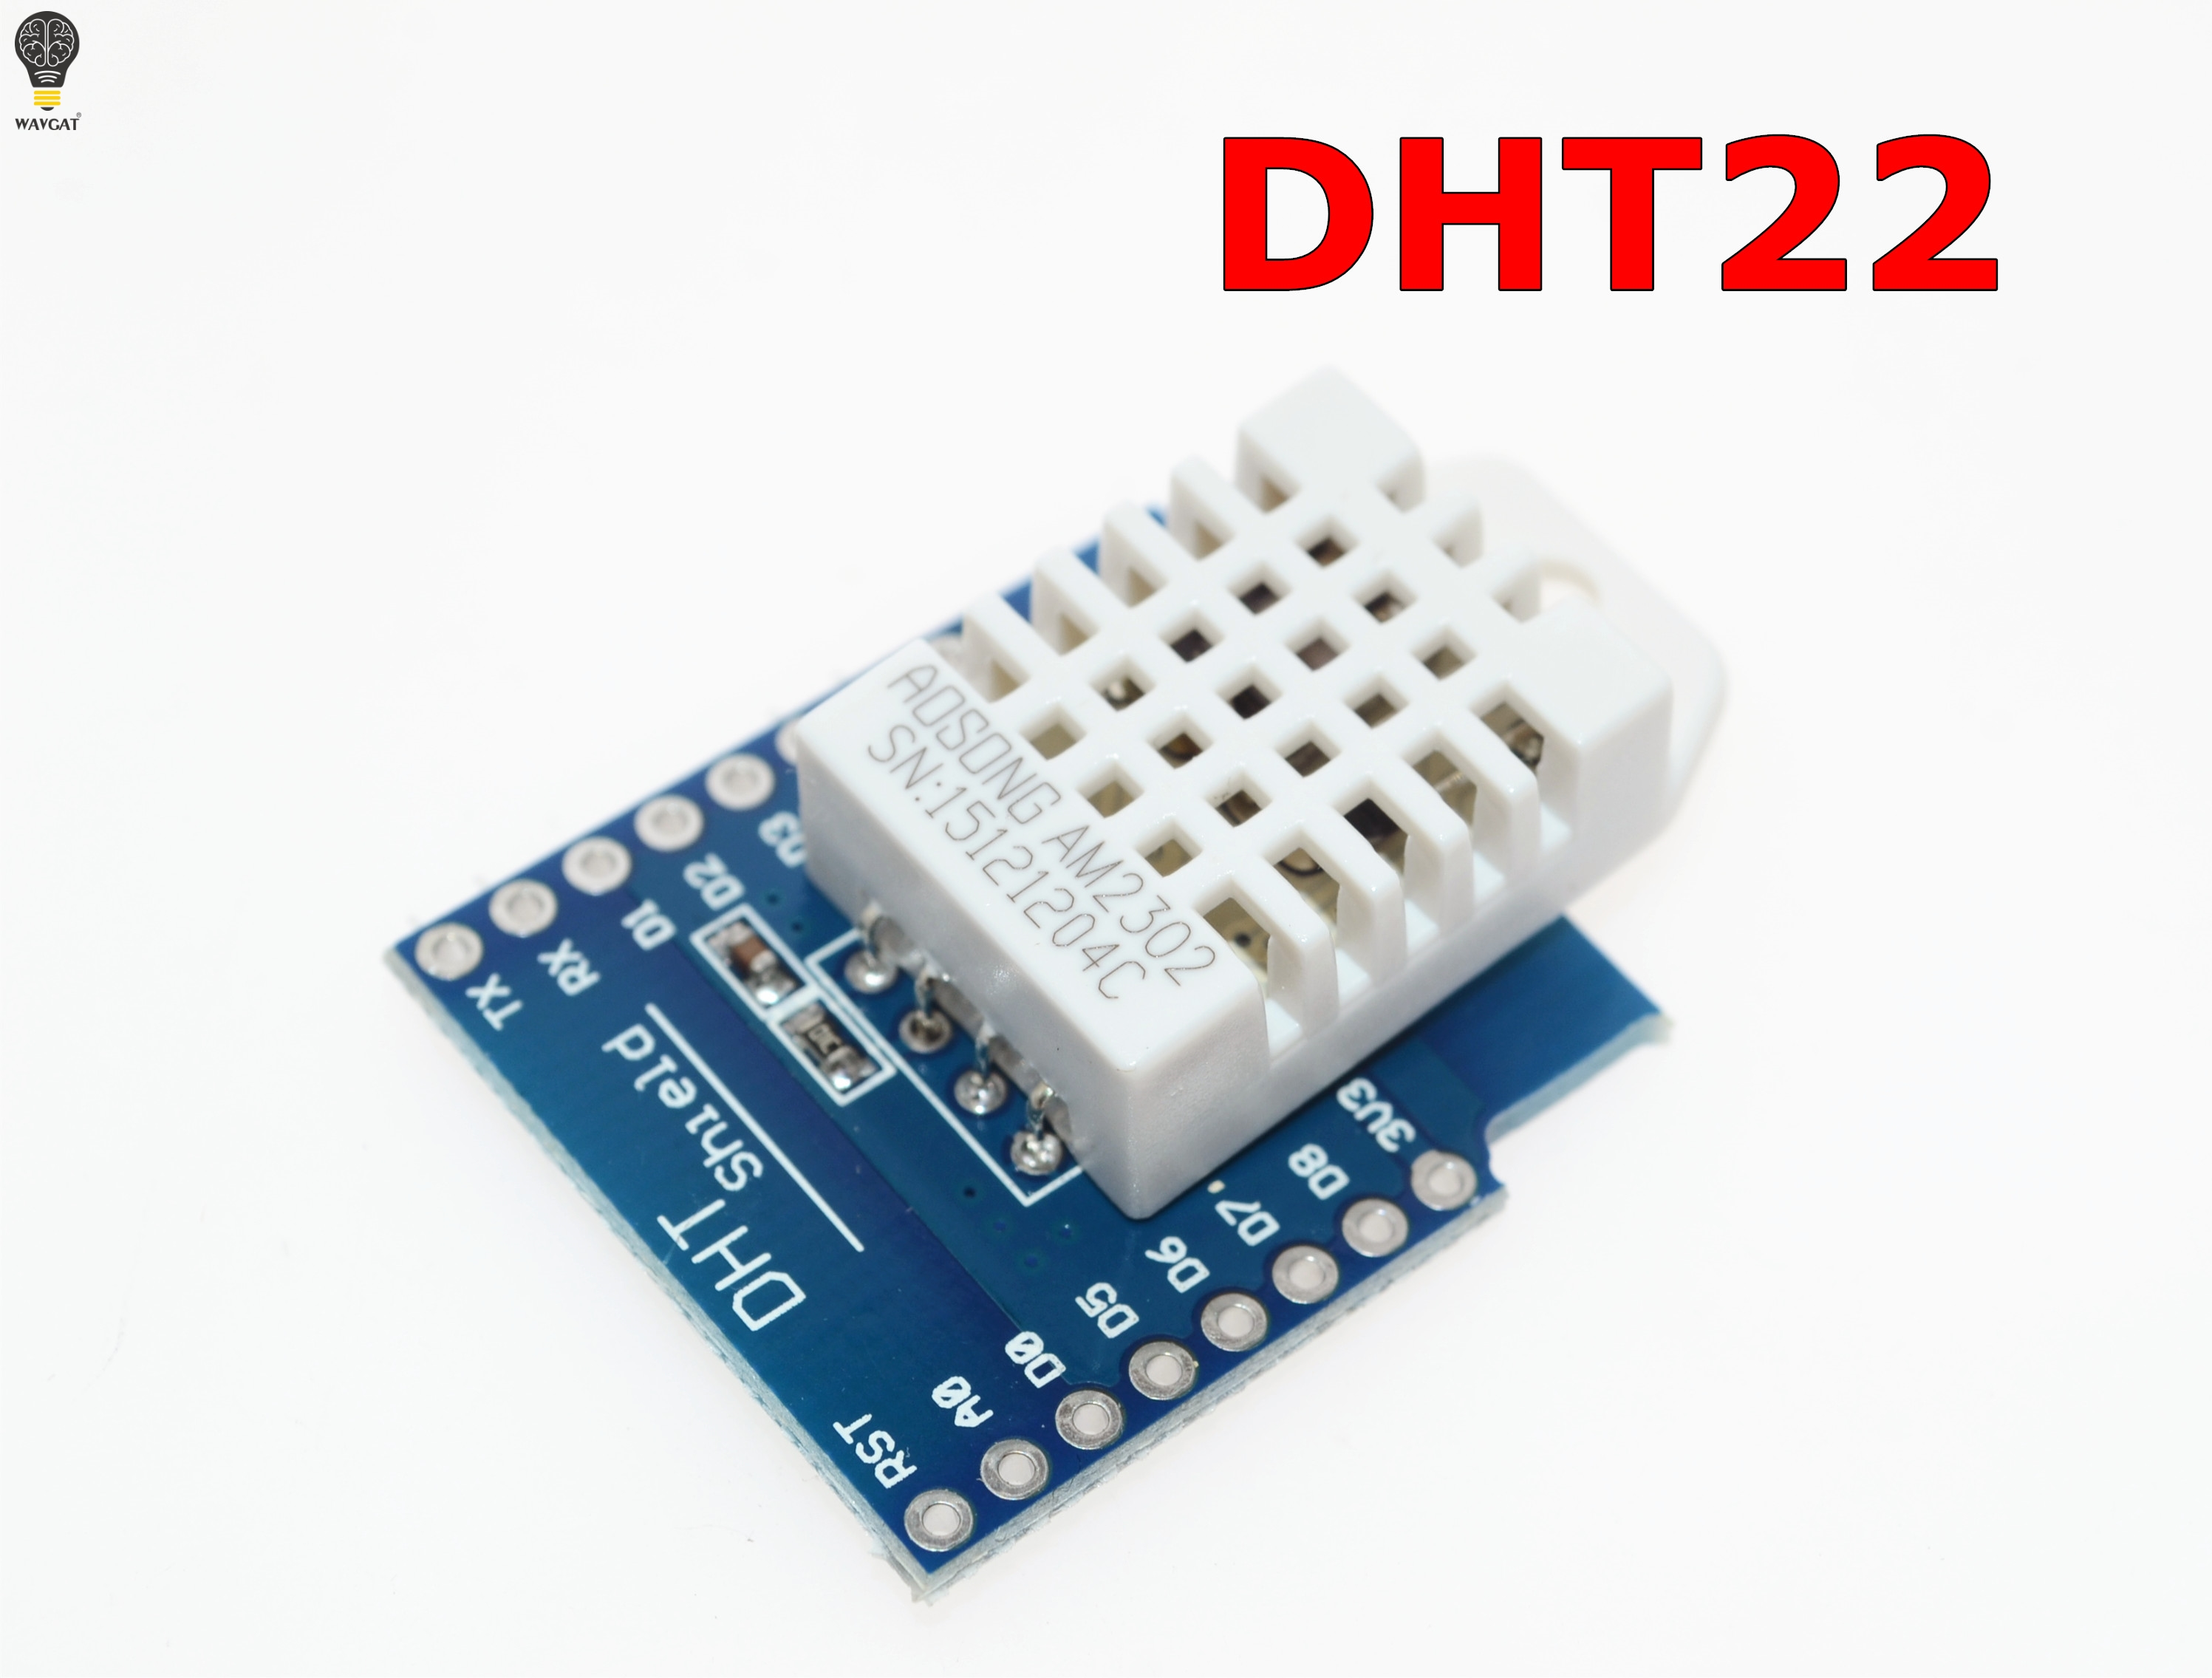 DHT Pro Shield for WAVGAT D1 mini DHT22 Single-bus digital temperature and humidity sensor module sensor